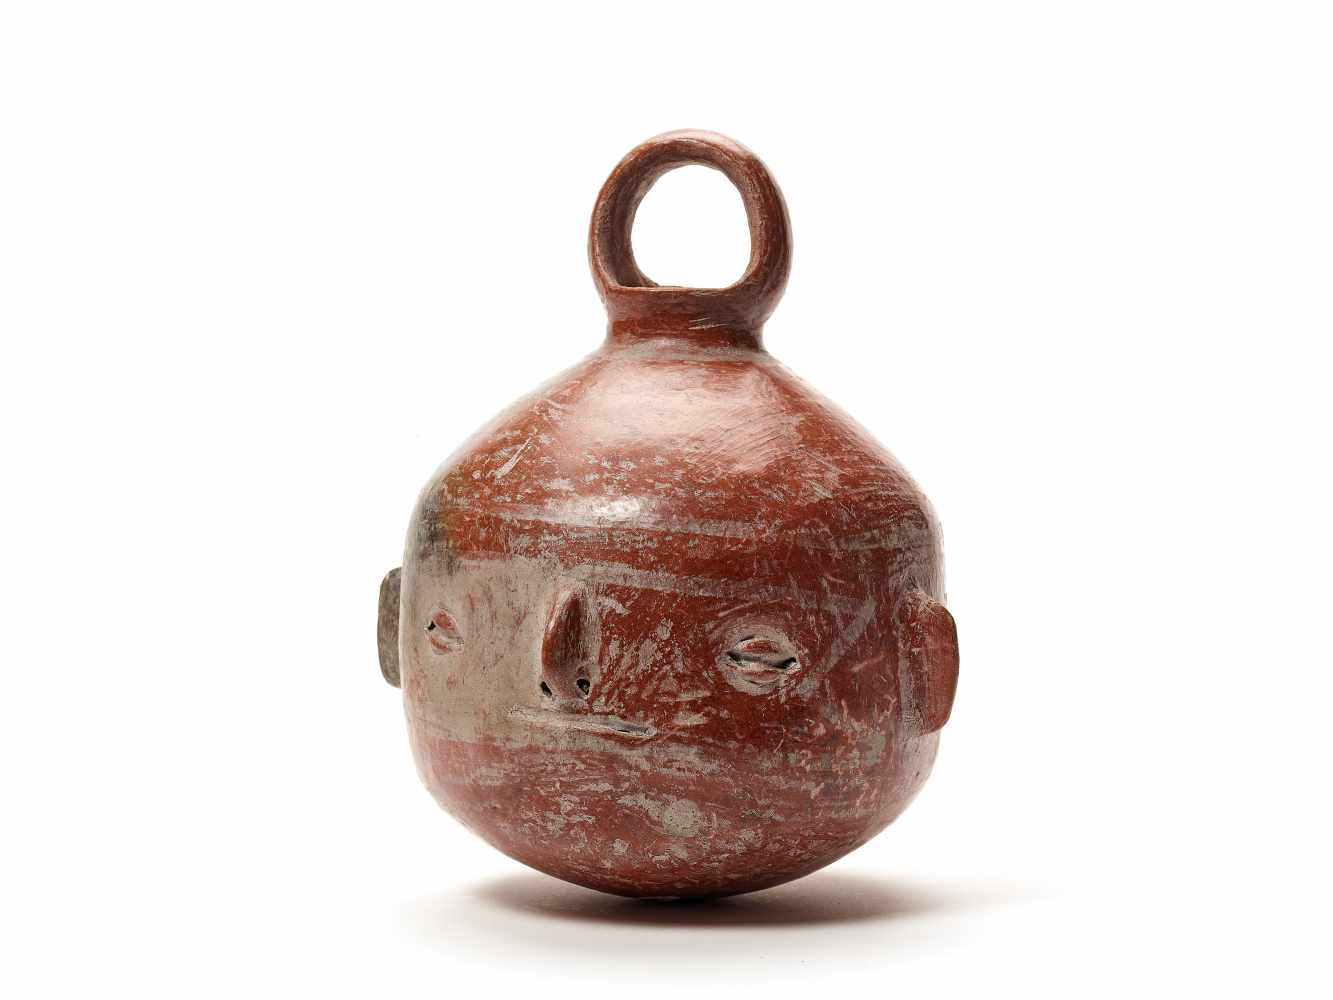 TL-TESTED HEAD-SHAPED VESSEL - VICUS CULTURE, PERU, C. 1st CENTURY BCFired clayVicus culture,